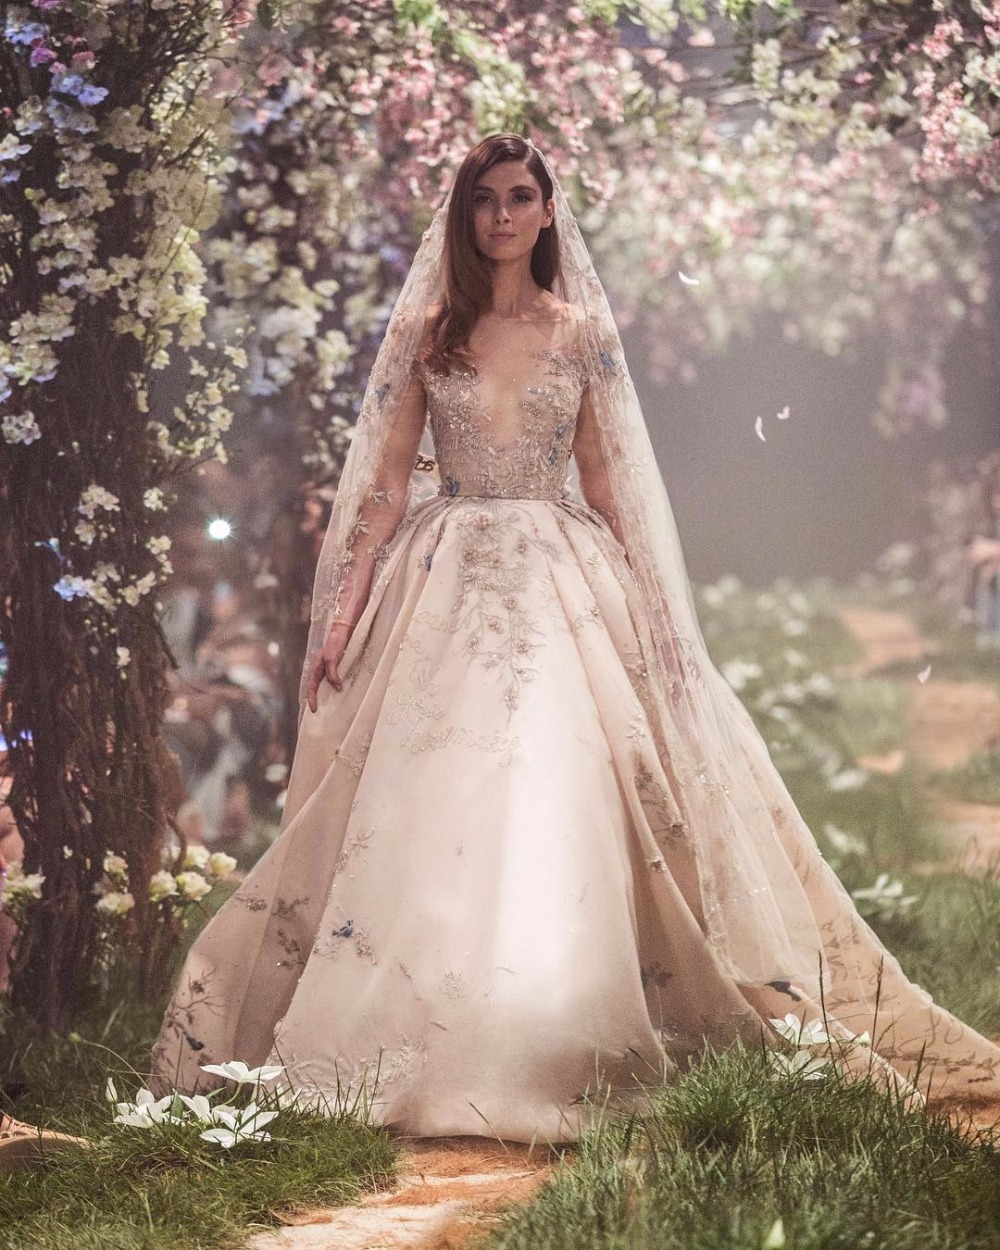 Disney Wedding Dresses 2019: New Disney Wedding Dresses By Paolo Sebastian